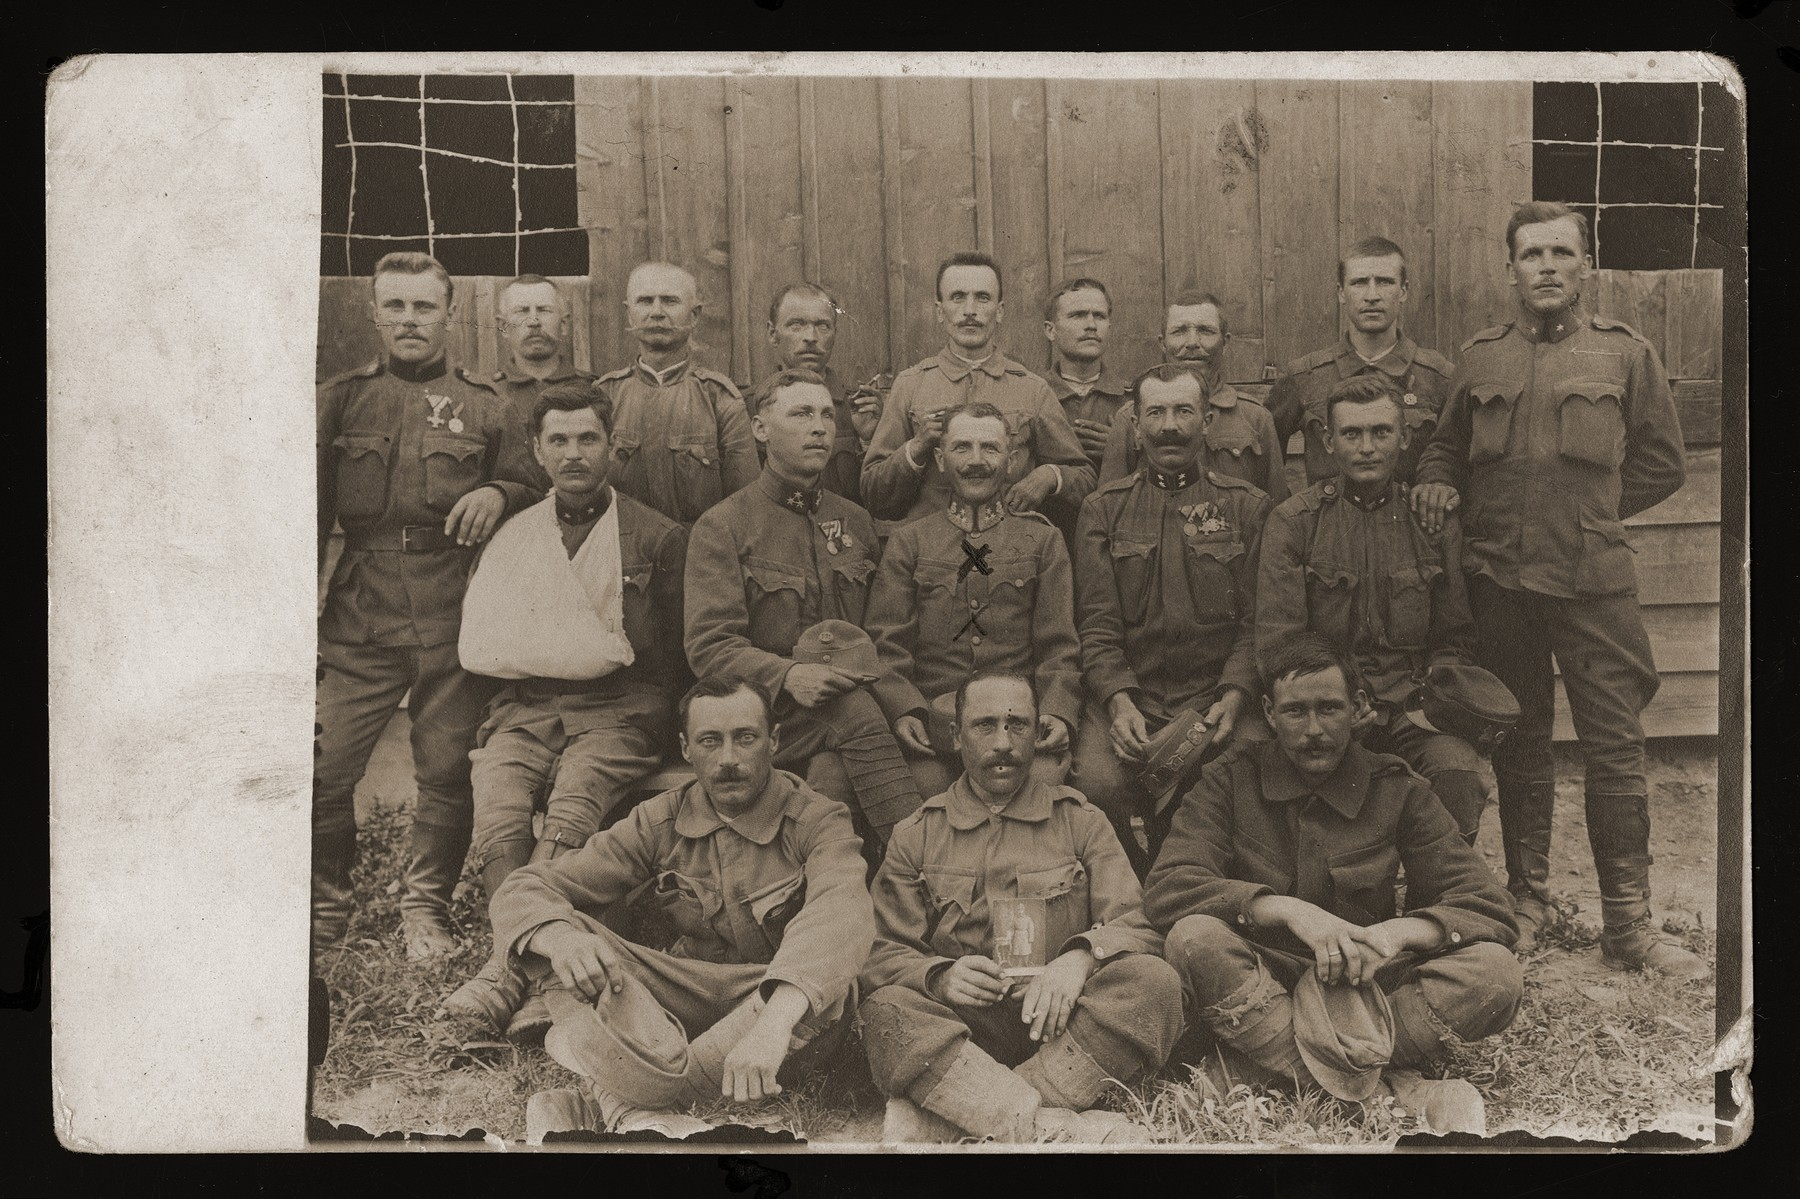 Group portrait of soldiers in the Polish army.